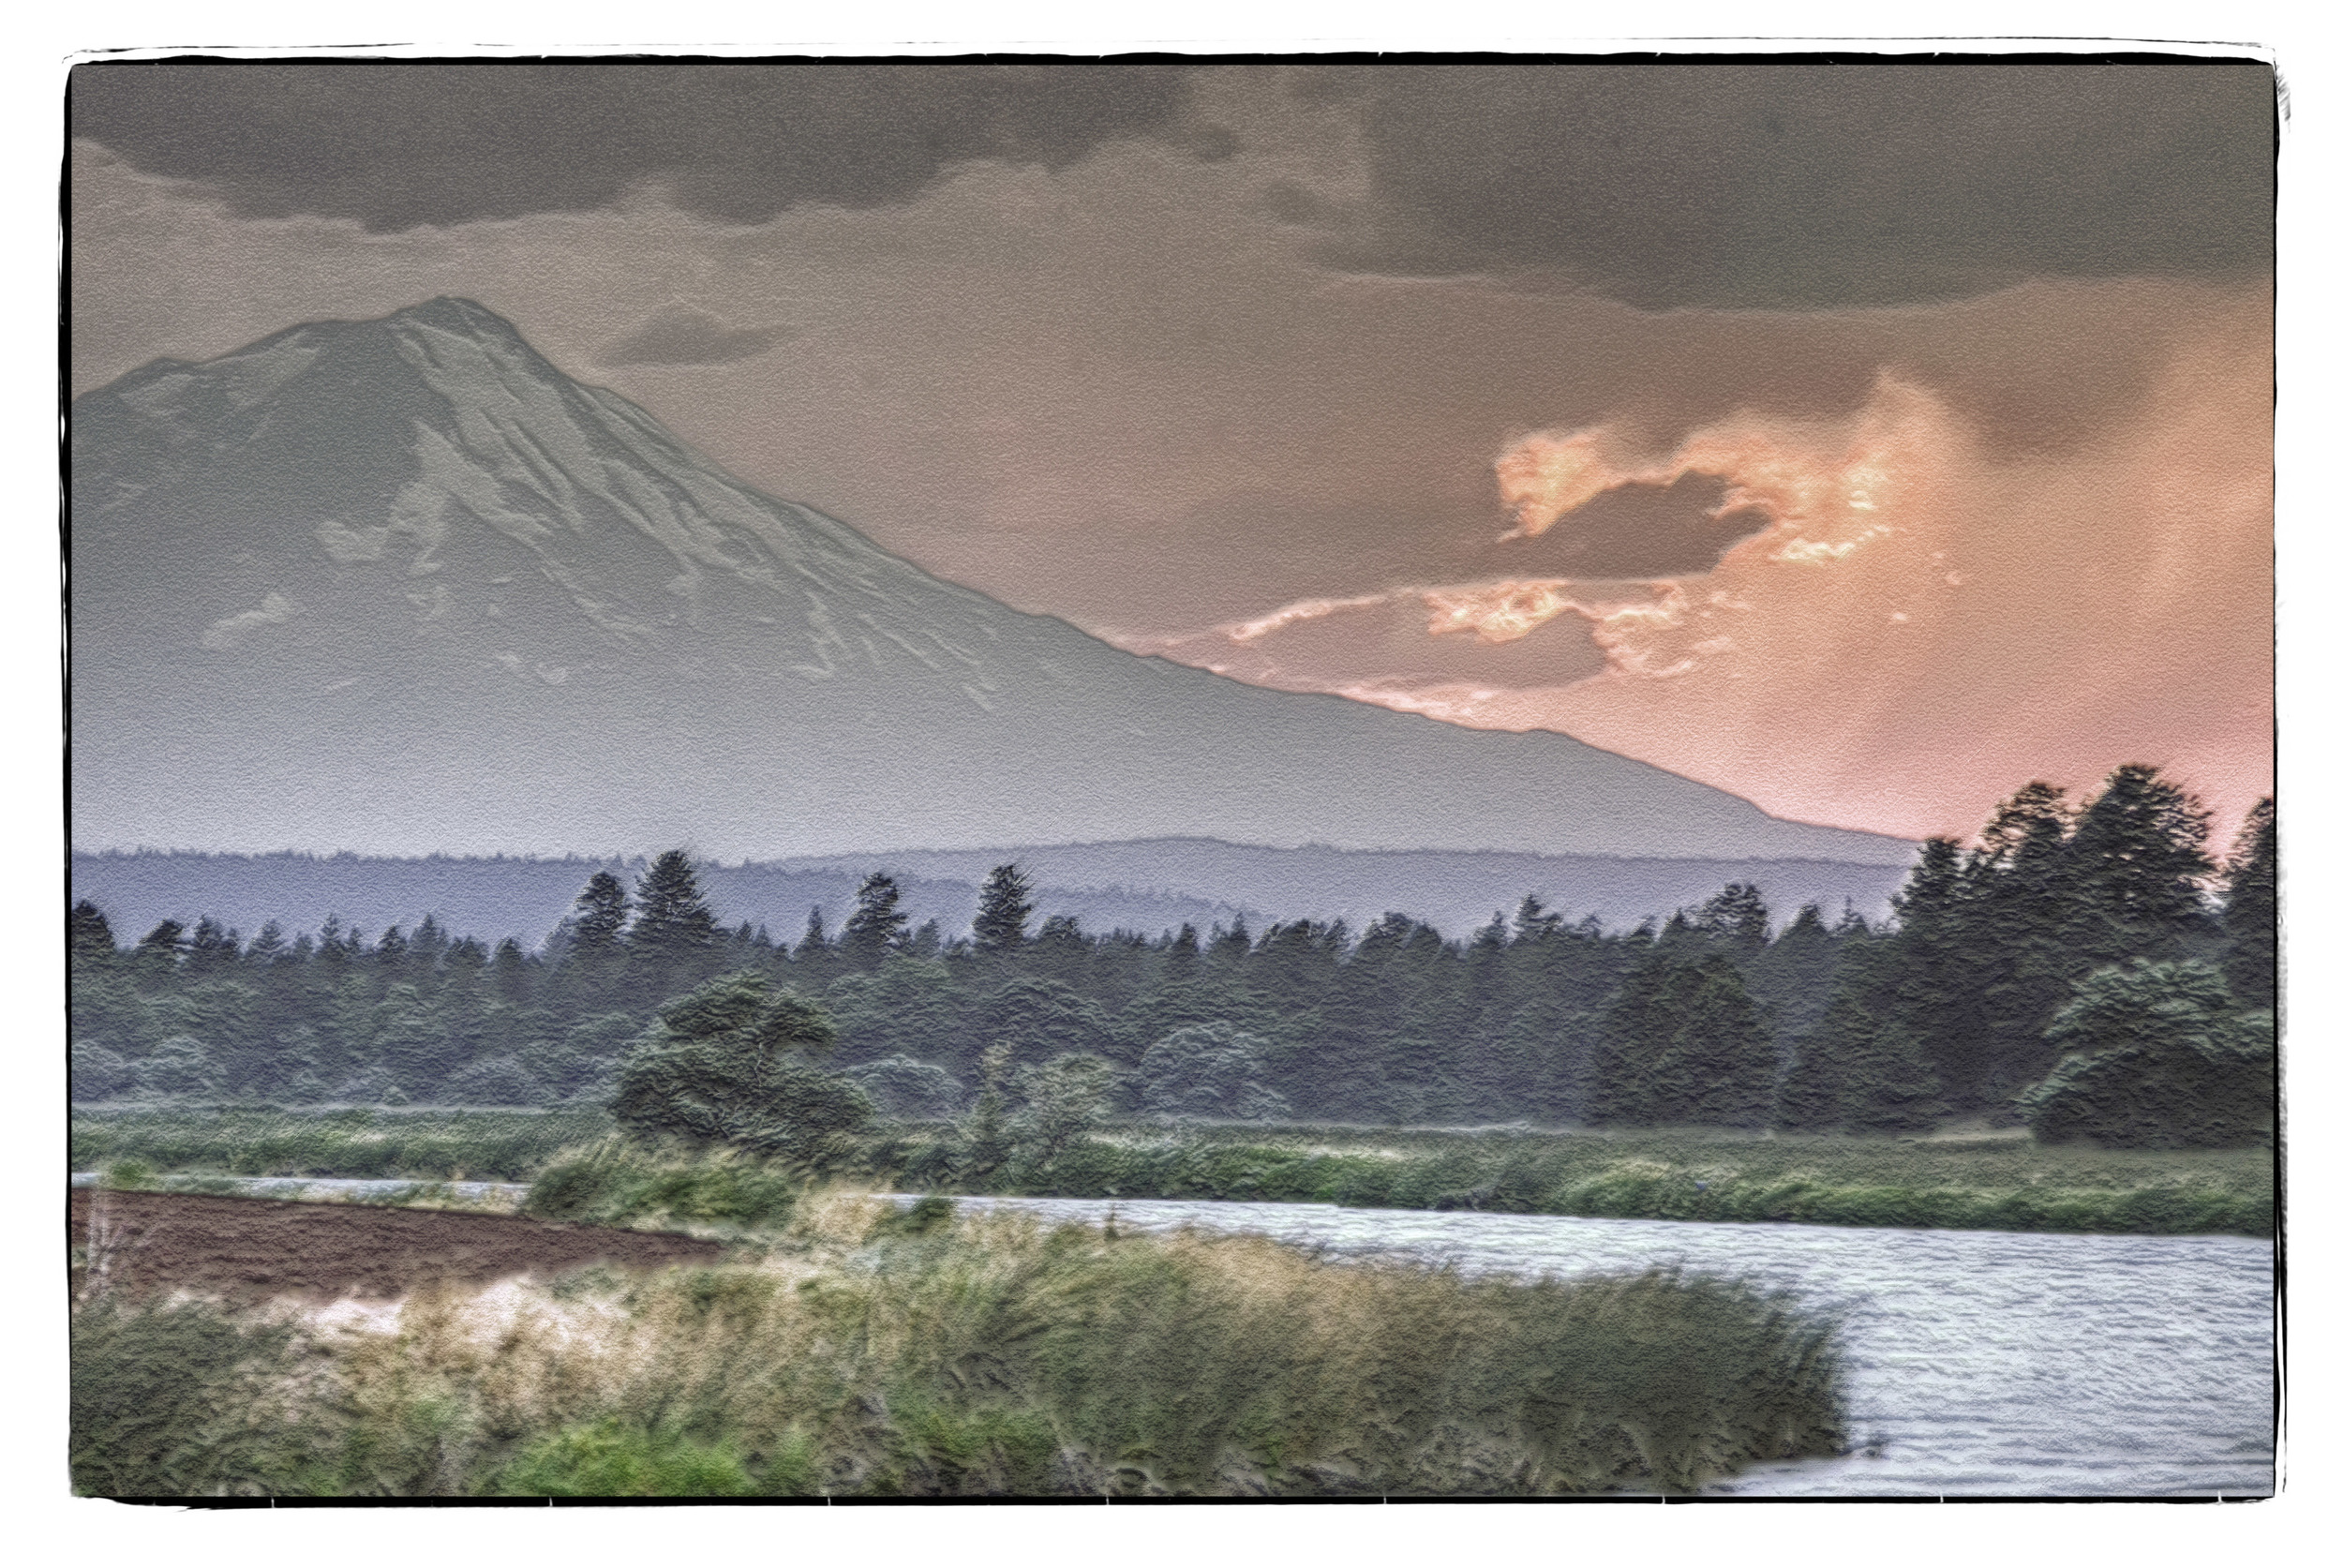 The sunset peeks from behind Mt. Shasta and from under the clouds.